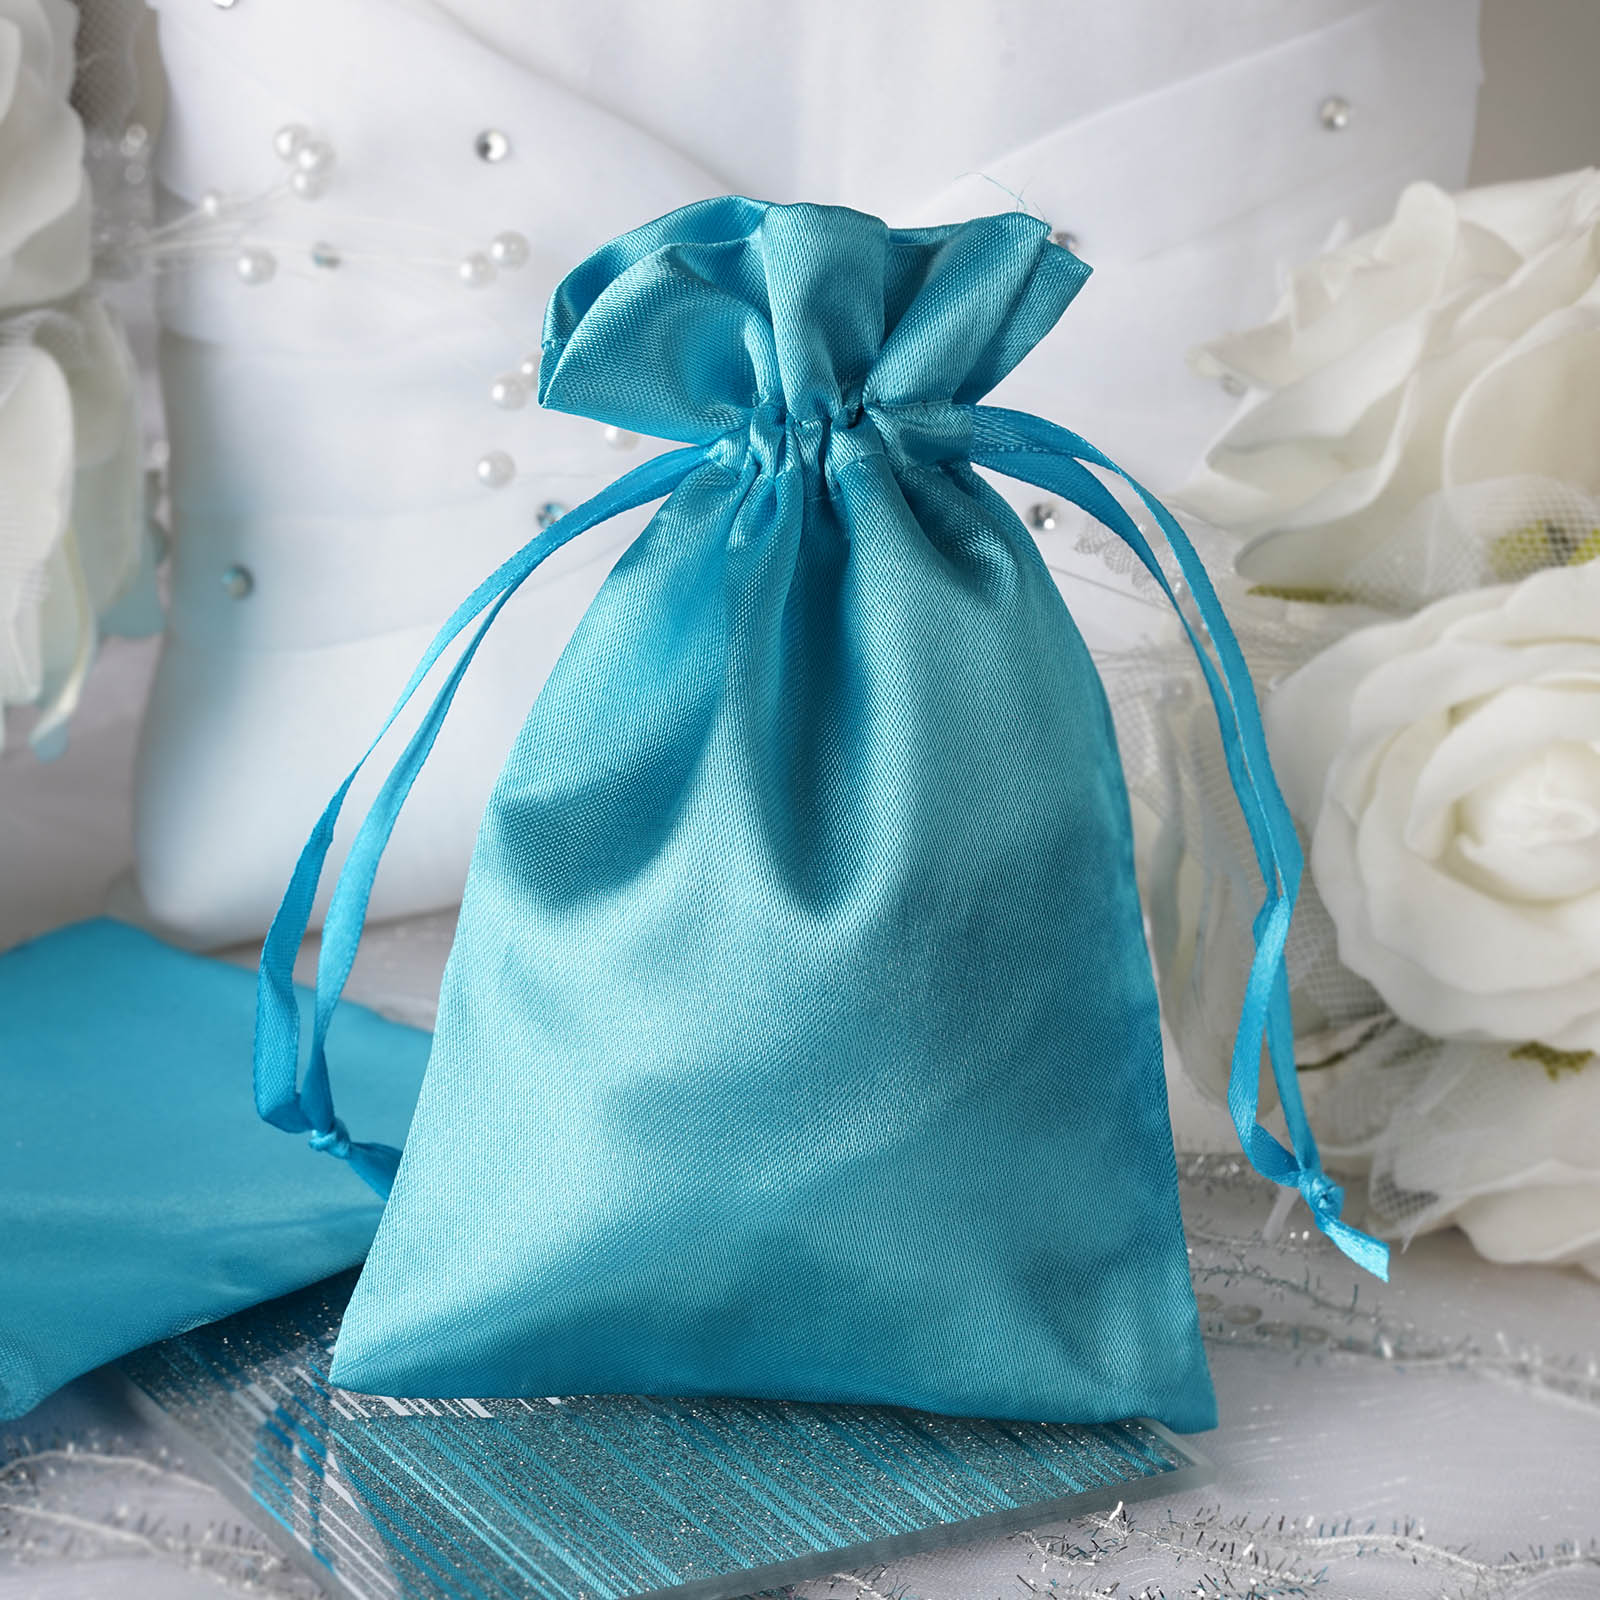 60 Pcs 4x5 SATIN FAVOR BAGS Wedding Party Reception Gift Favors Bulk WHOLESALE